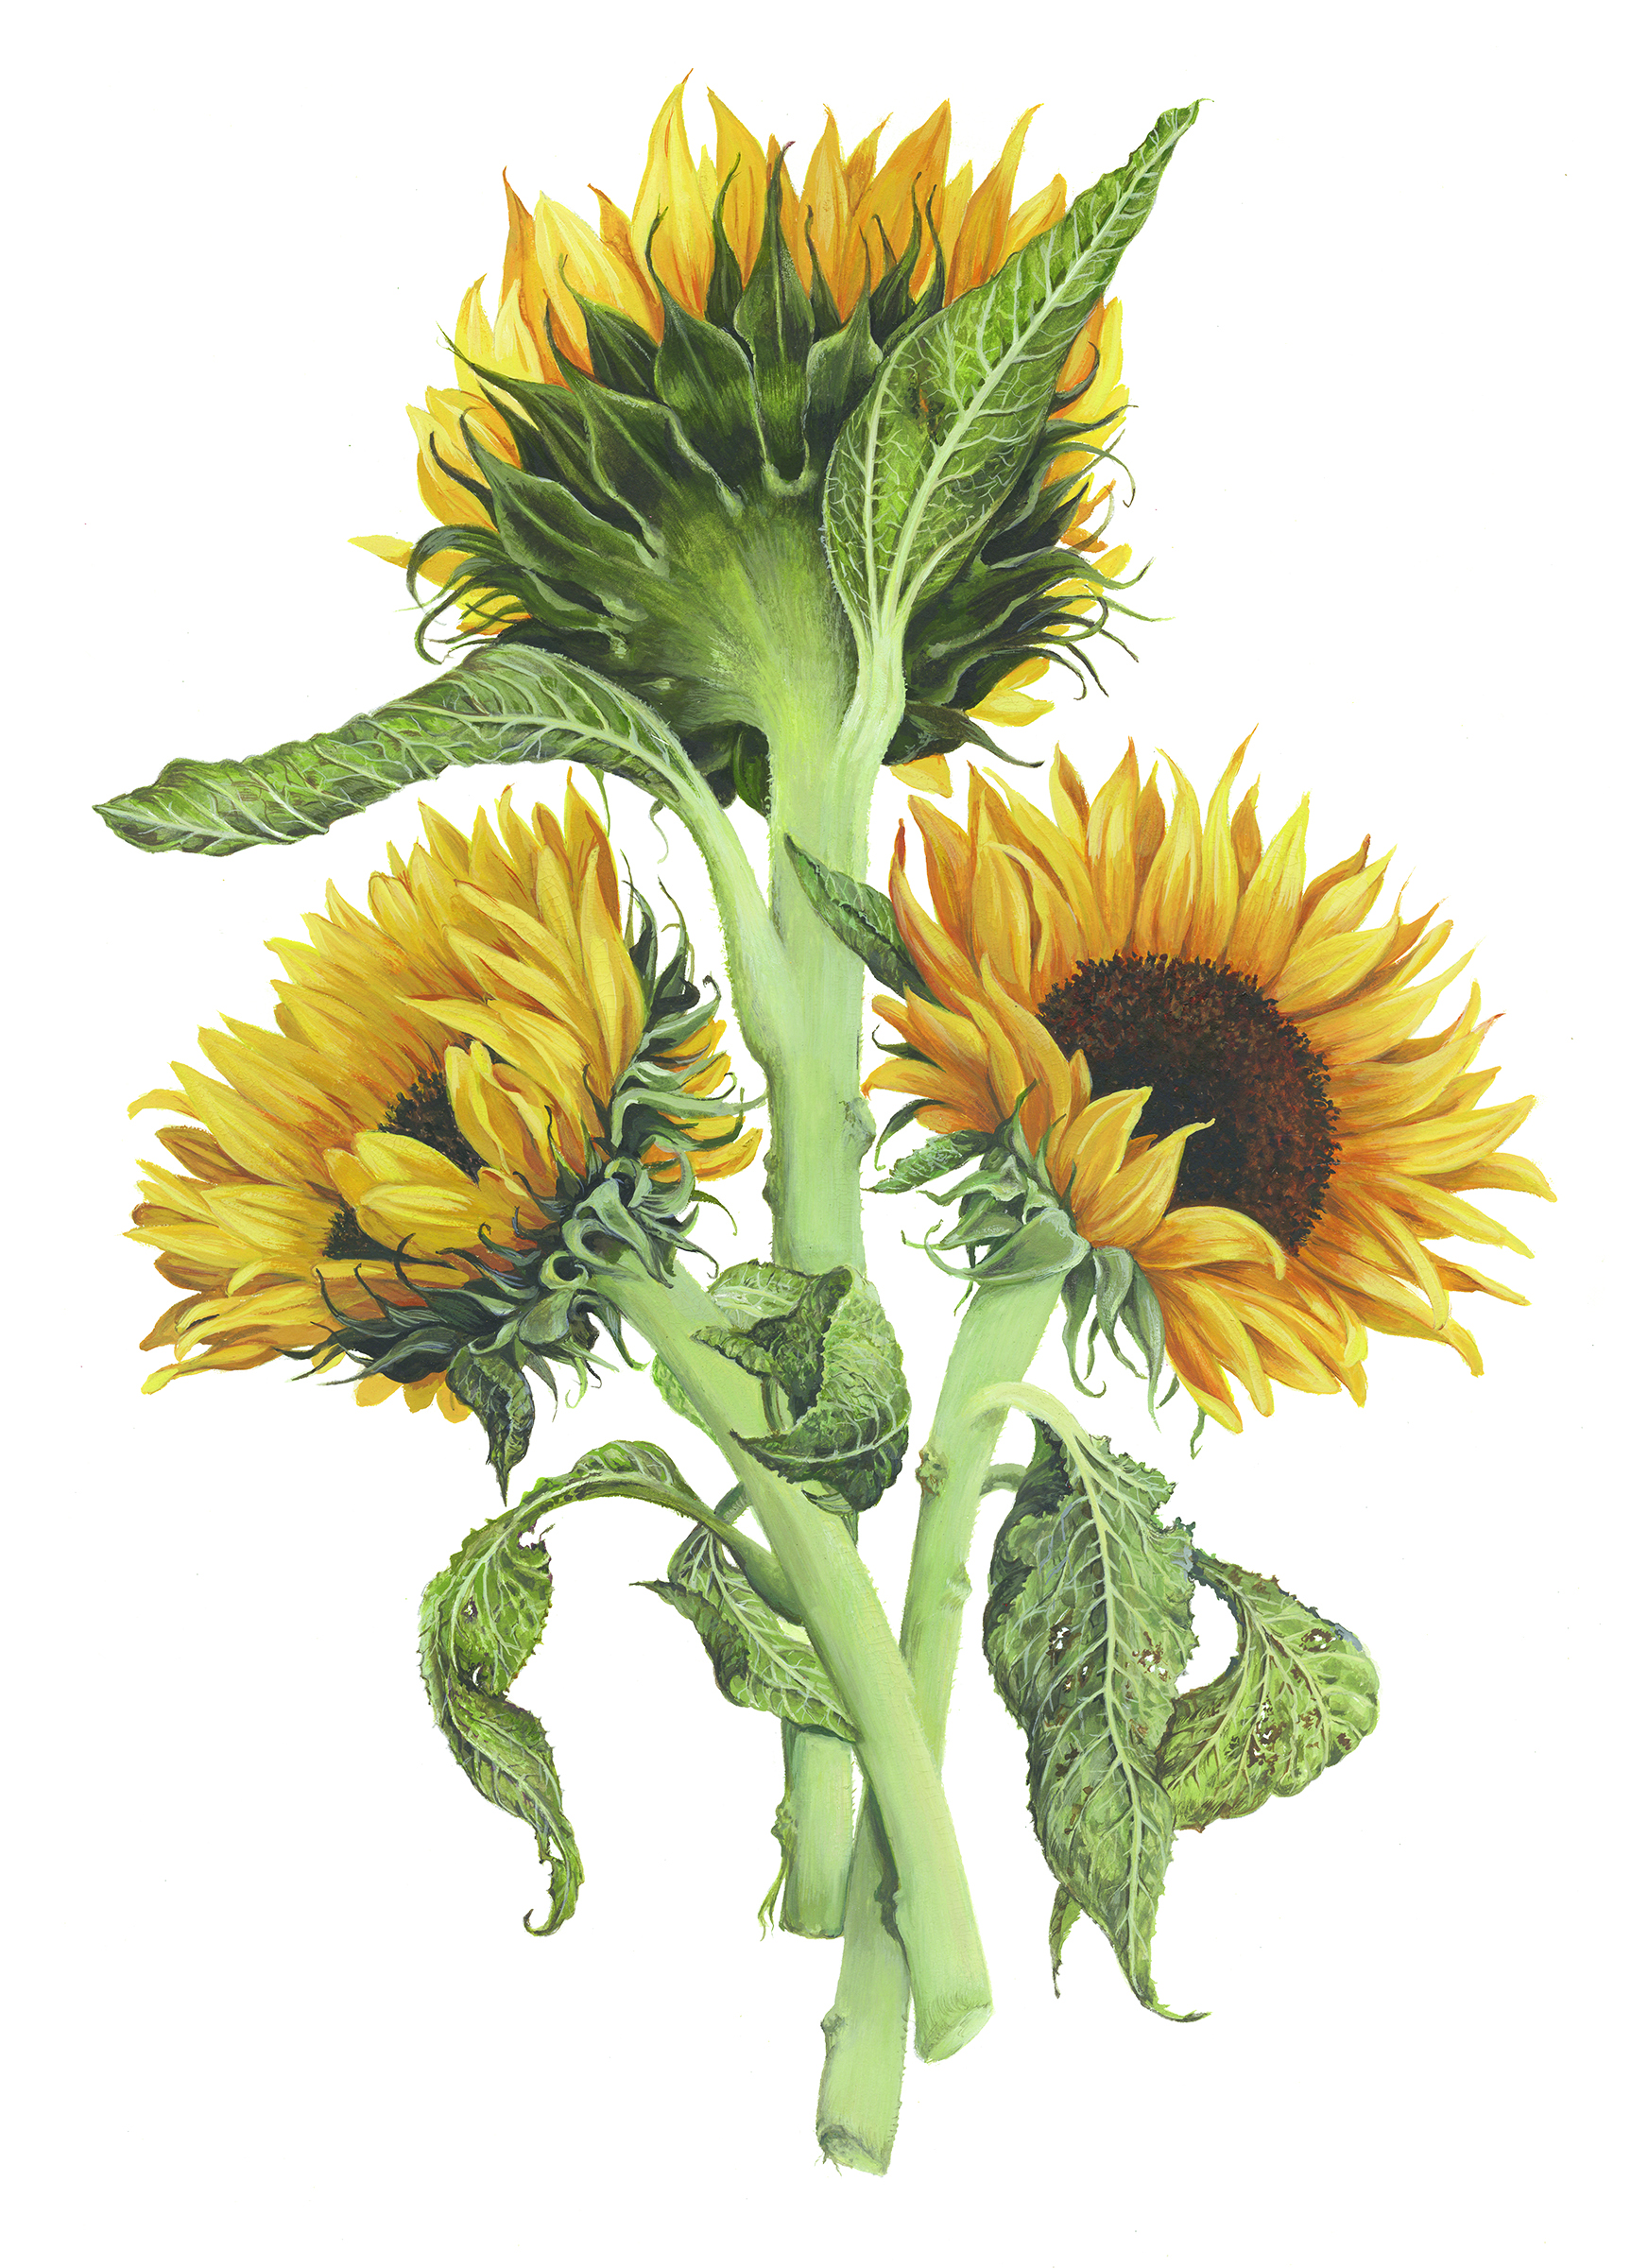 Three Sunflowers by Jeannetta vanRaalte, one of the sketches on exhibit. (United States Botanic Garden)